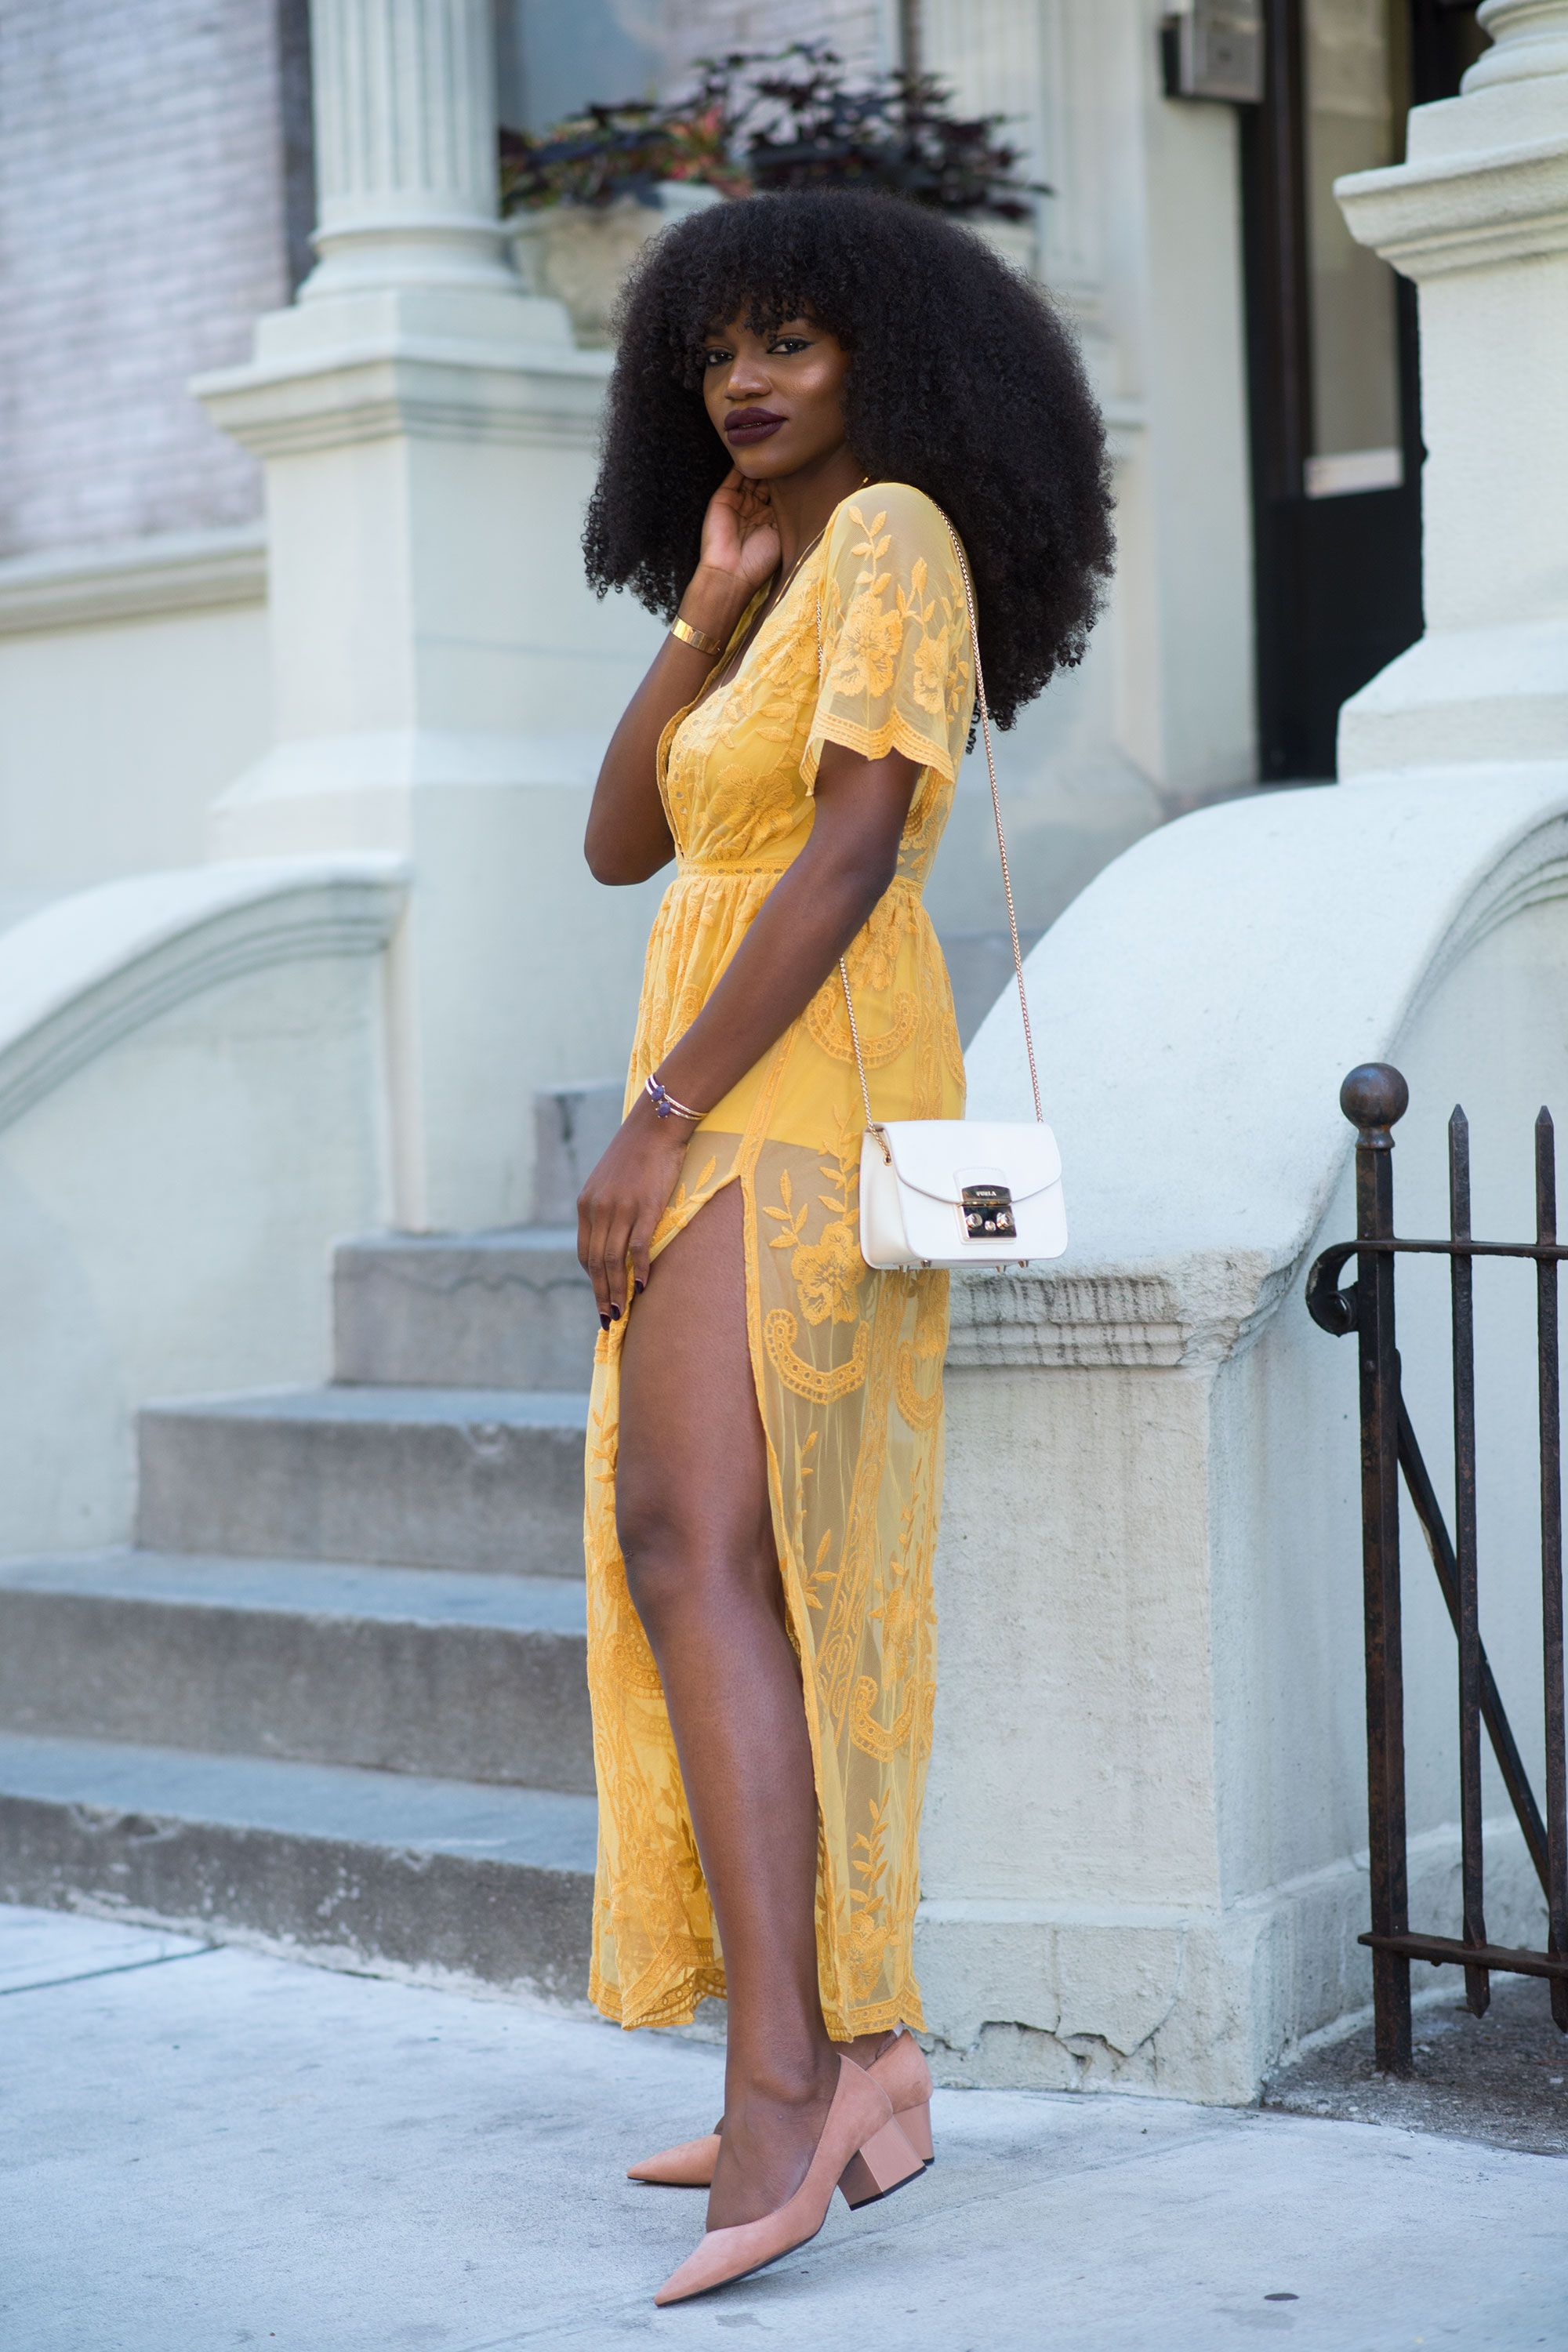 "<p>For a retro-inspired look that's dressy enough for Sunday brunch, juxtapose the boxy&nbsp&#x3B;construction of the handbag with a&nbsp&#x3B;delicate lace number.&nbsp&#x3B;""The bag makes a boho chic dress&nbsp&#x3B;look much&nbsp&#x3B;more sleek,"" says Gold.</p>"